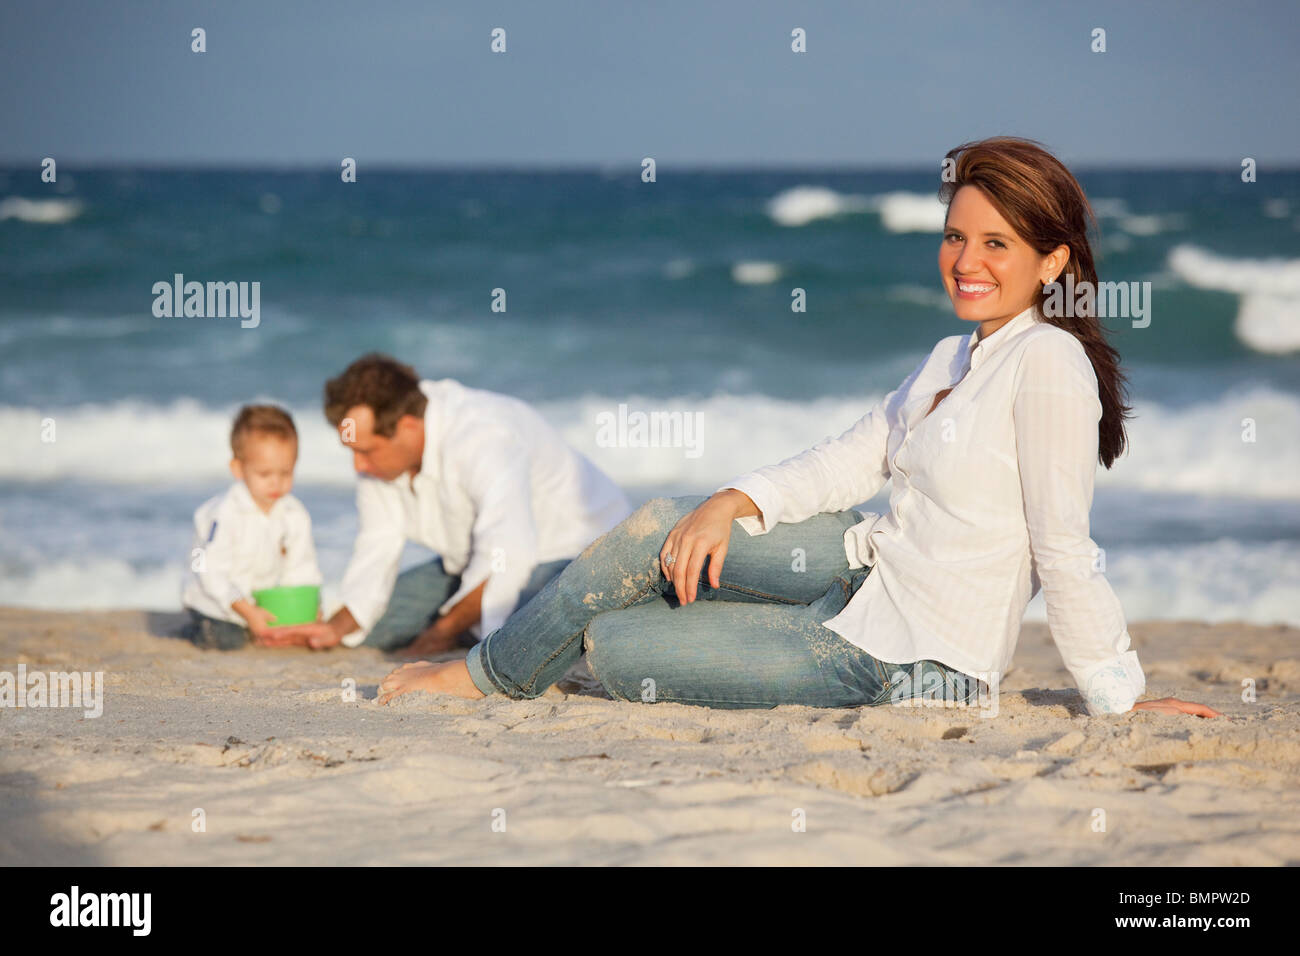 Fort Lauderdale, Florida, United States Of America; A Woman On The Beach With Her Family Stock Photo